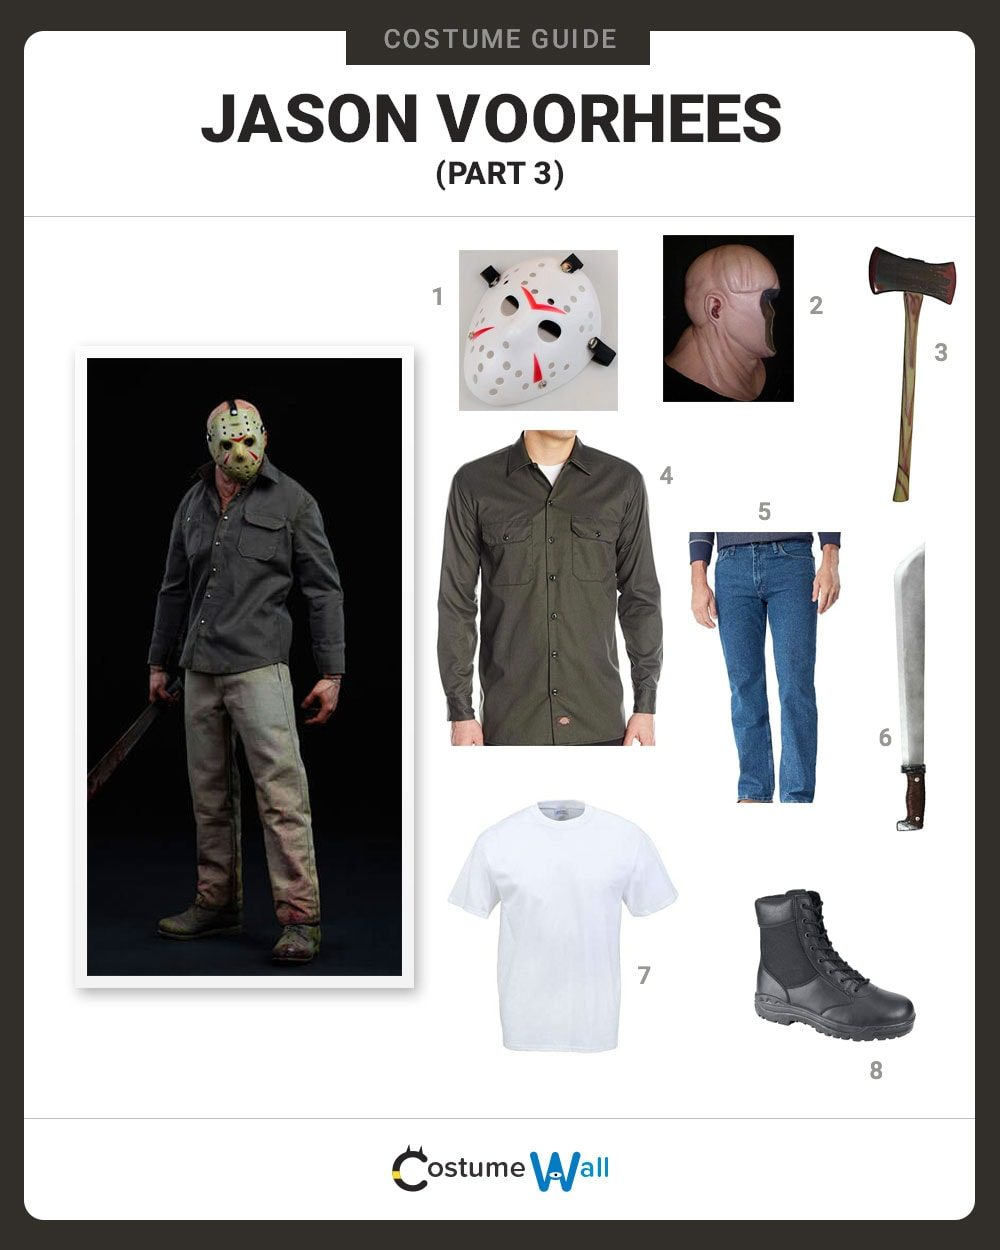 Jason Voorhees (Part 3) Costume Guide